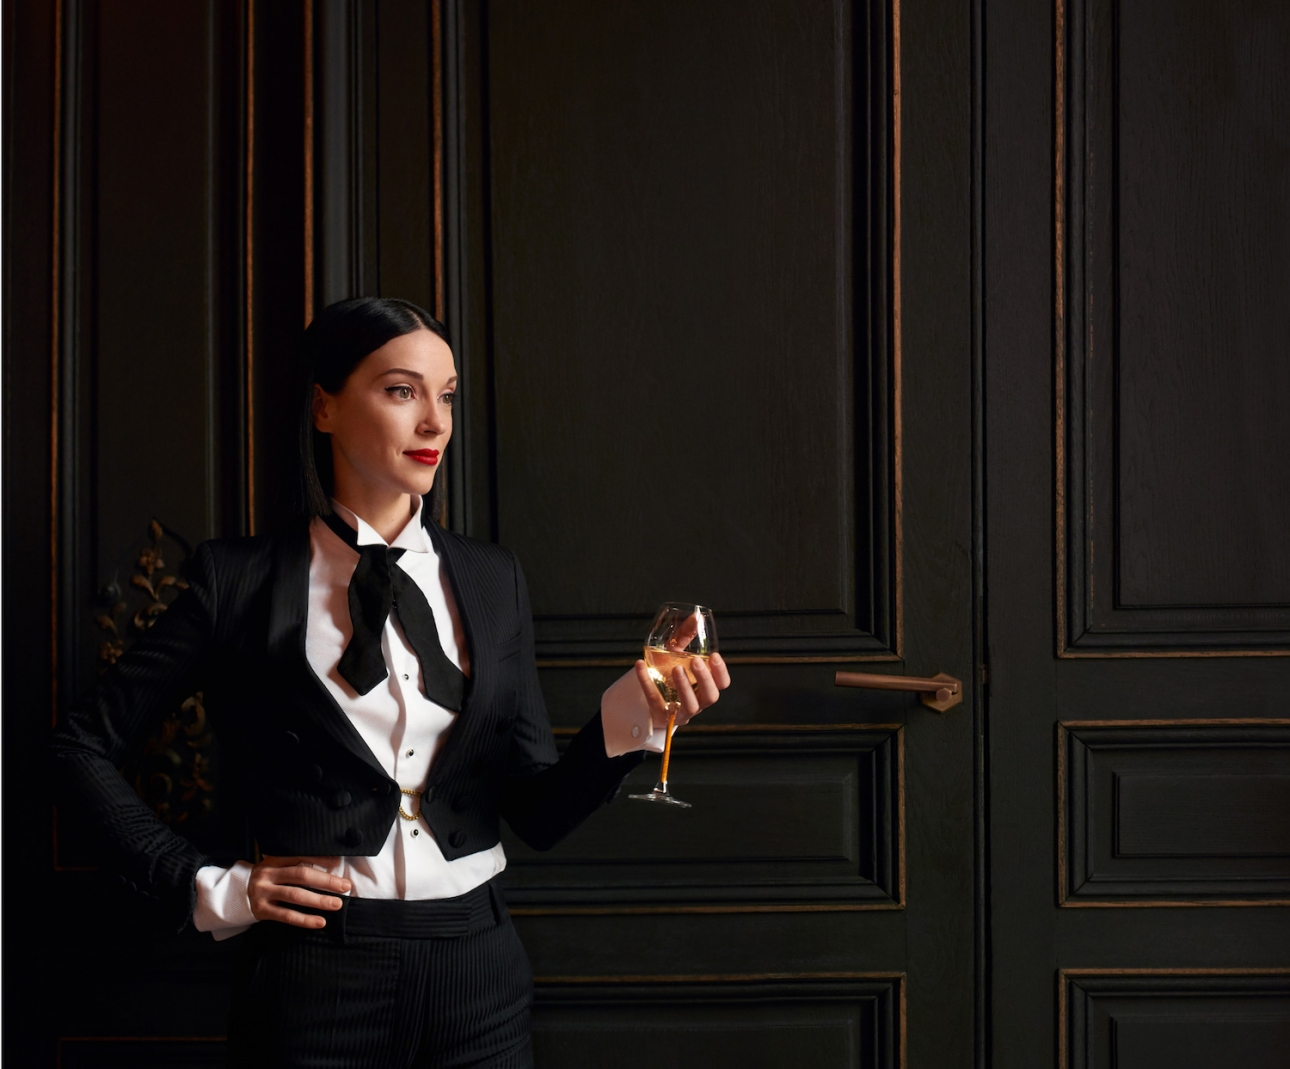 St. Vincent to open pop-up champagne bar in London next month